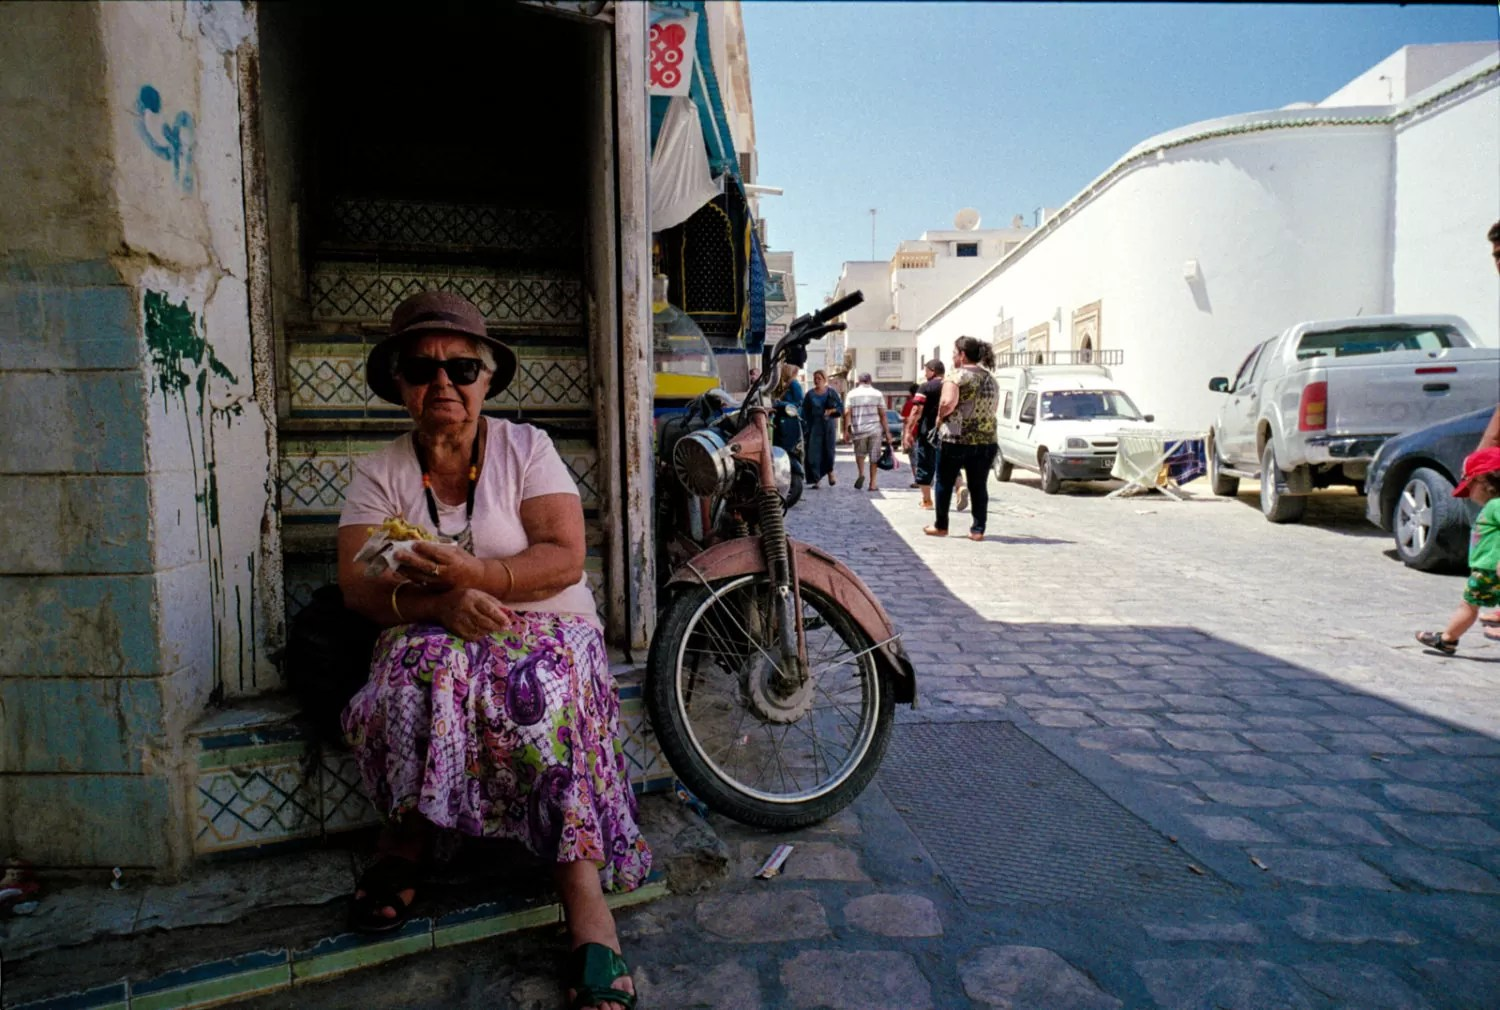 Nabeul 2017 - Street Photography Session - Andrea Scirè - Leica m6